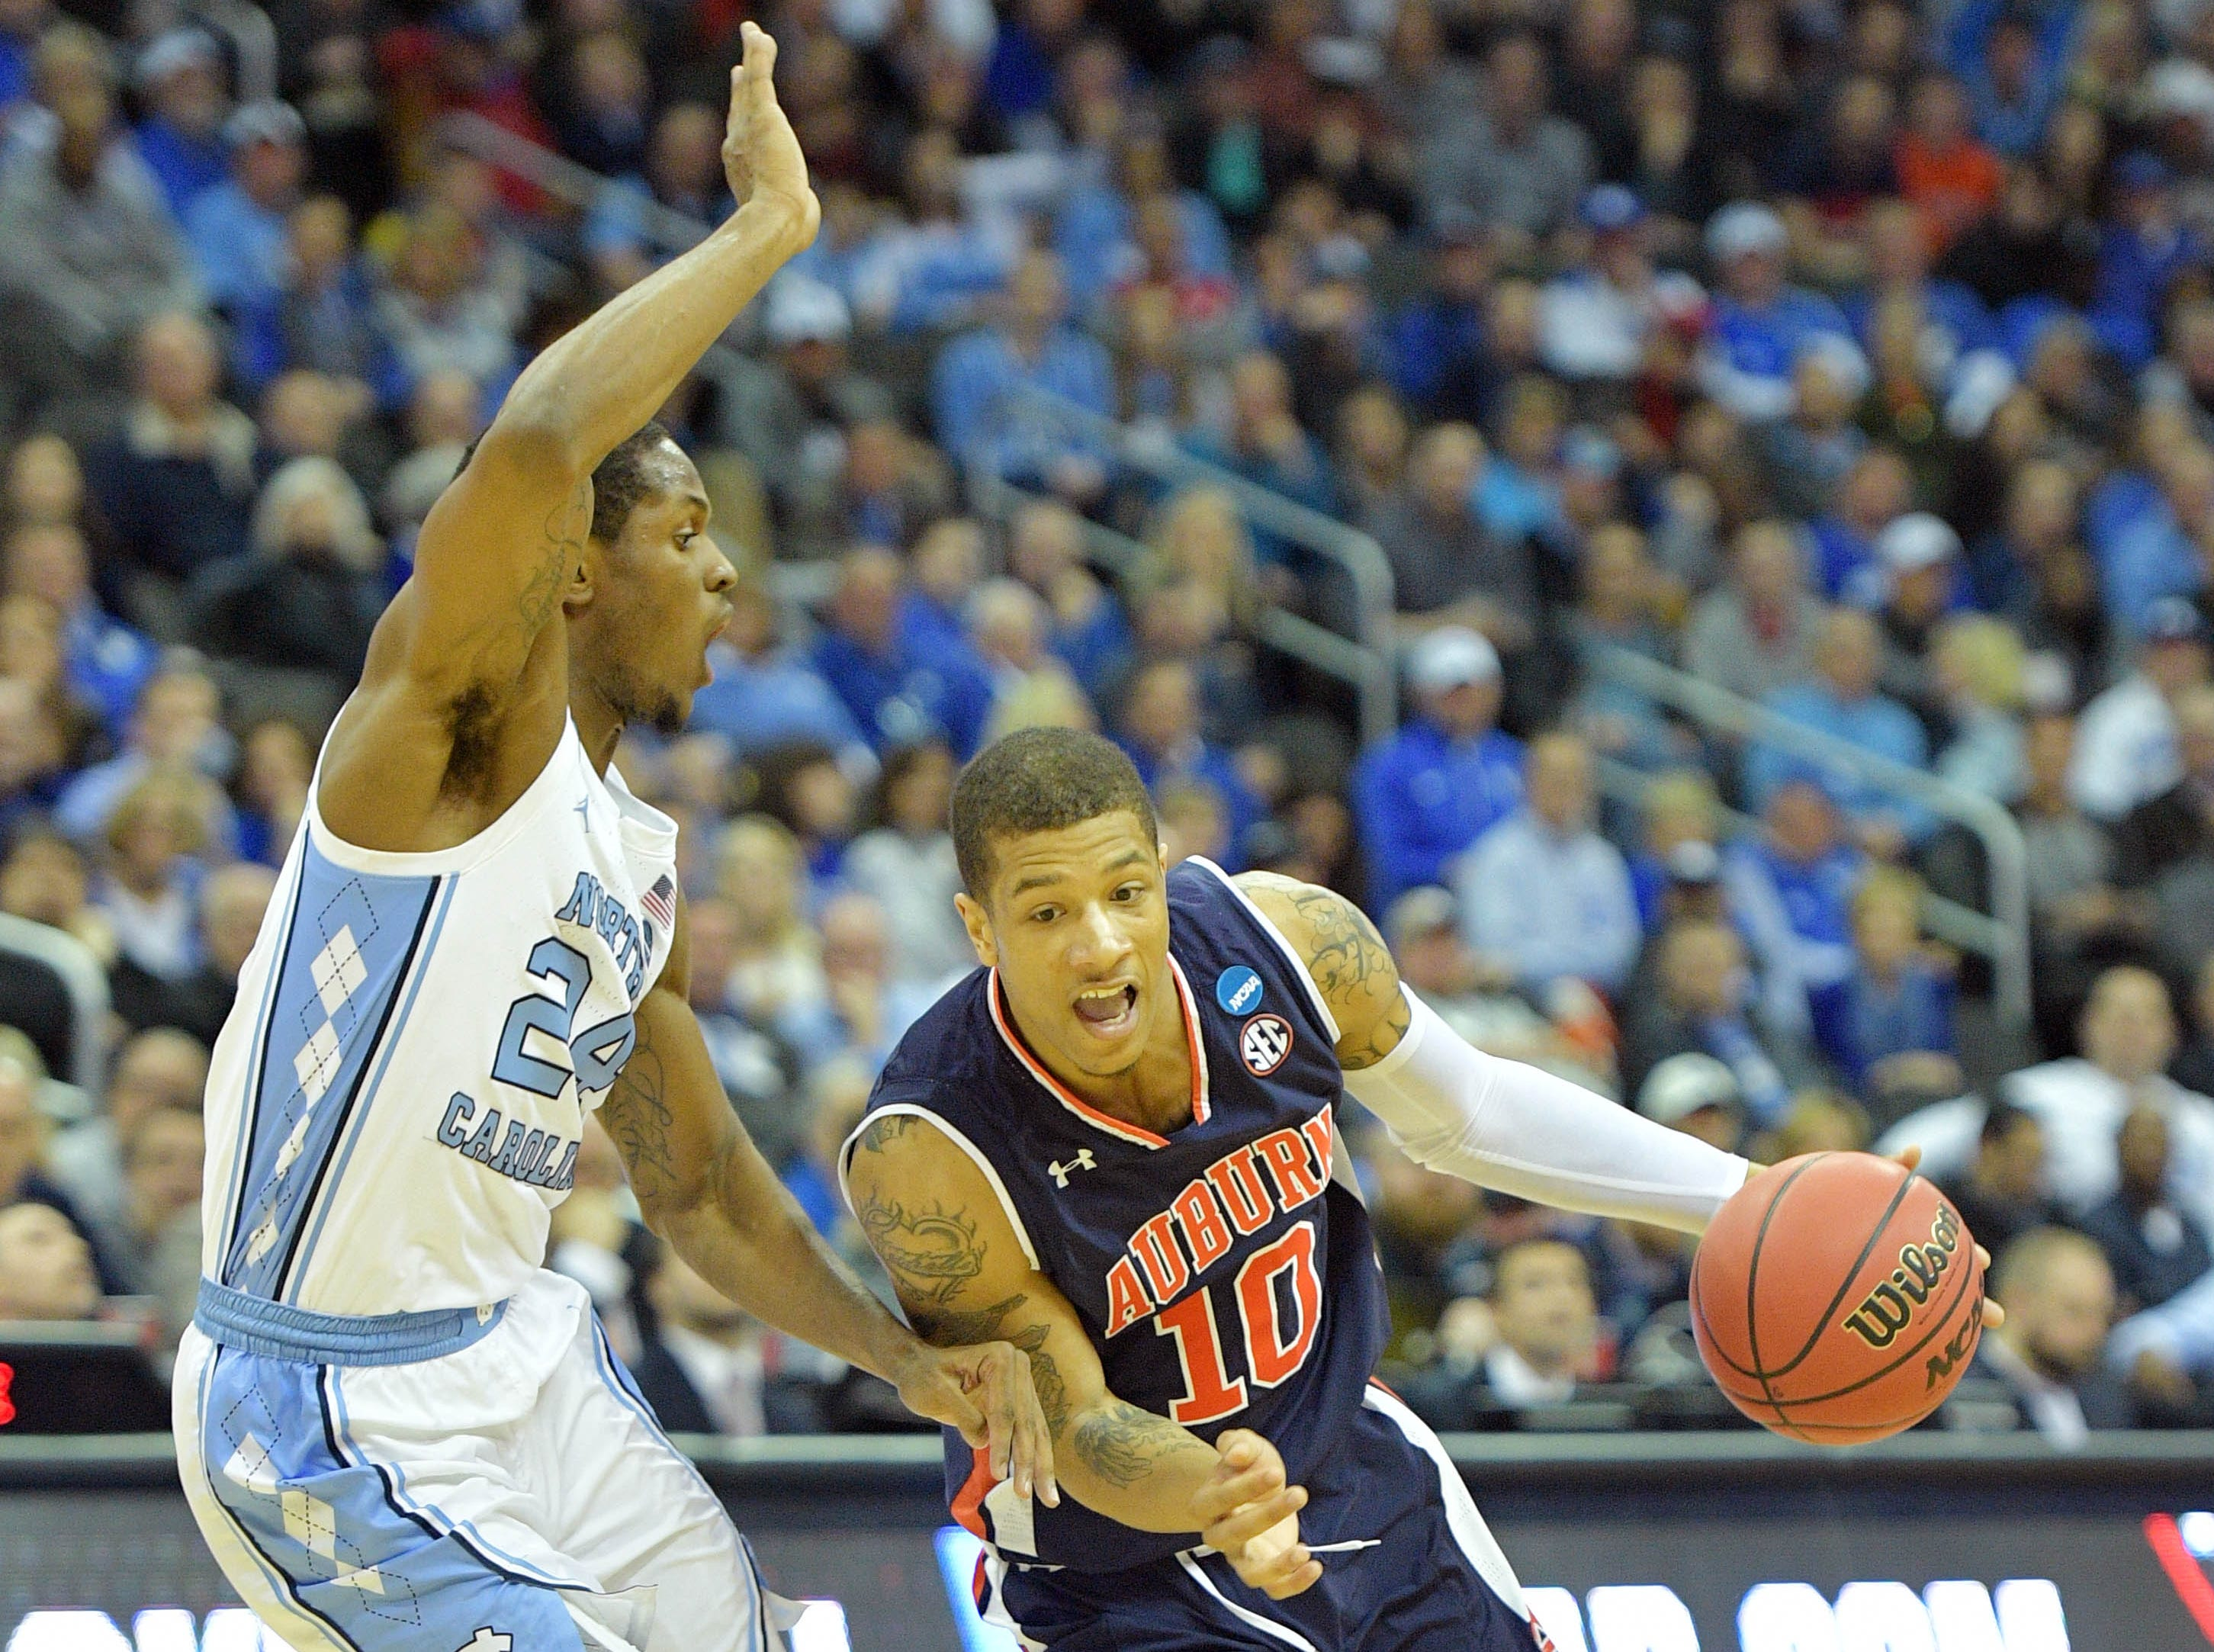 Mar 29, 2019; Kansas City, MO, United States; Auburn Tigers guard Samir Doughty (10) drives to the basket against North Carolina Tar Heels guard Kenny Williams (24) during the first half in the semifinals of the midwest regional of the 2019 NCAA Tournament at Sprint Center. Mandatory Credit: Denny Medley-USA TODAY Sports